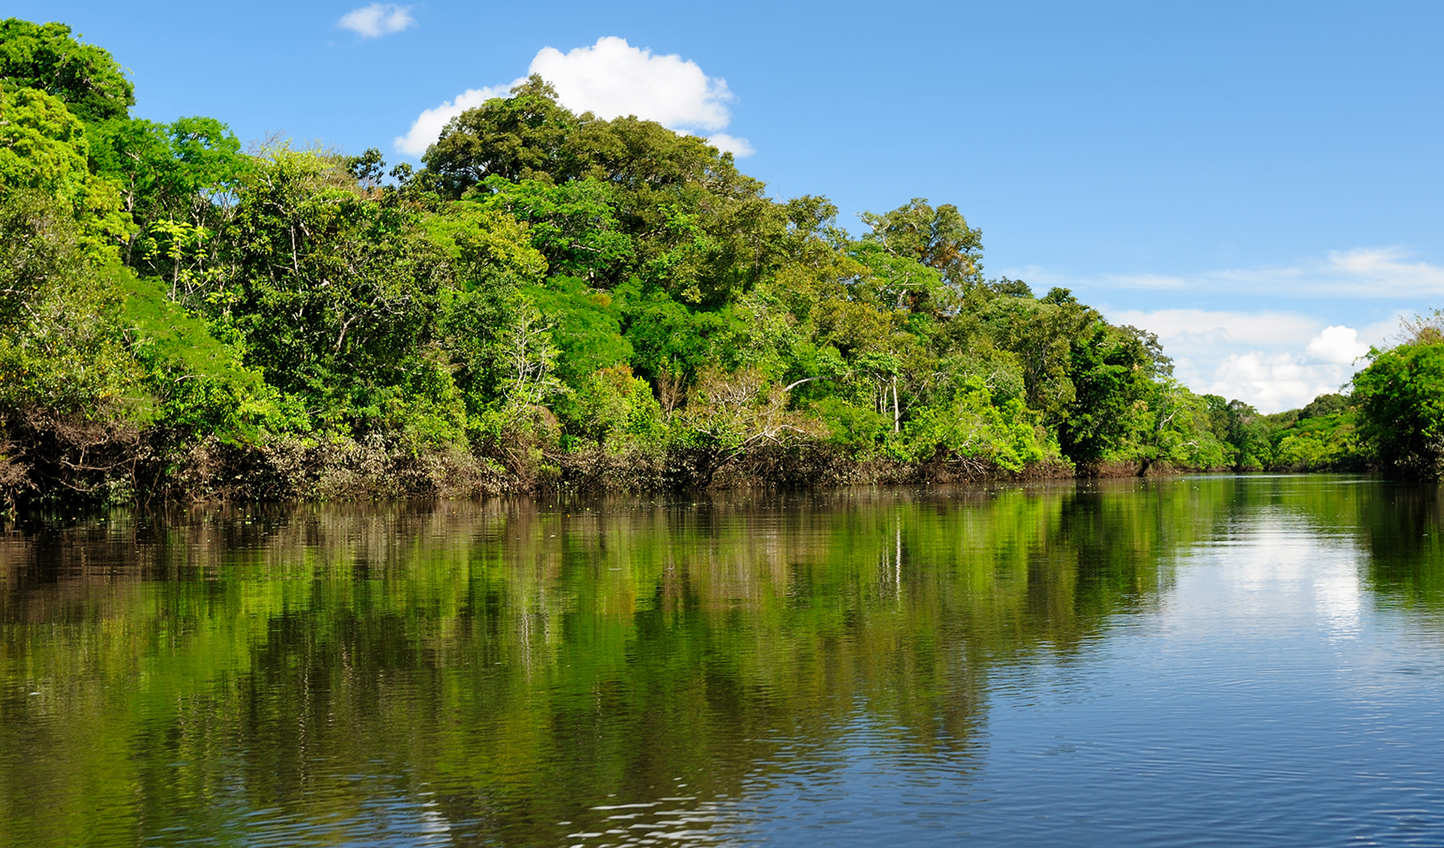 Feel immersed in the Amazon Rainforest